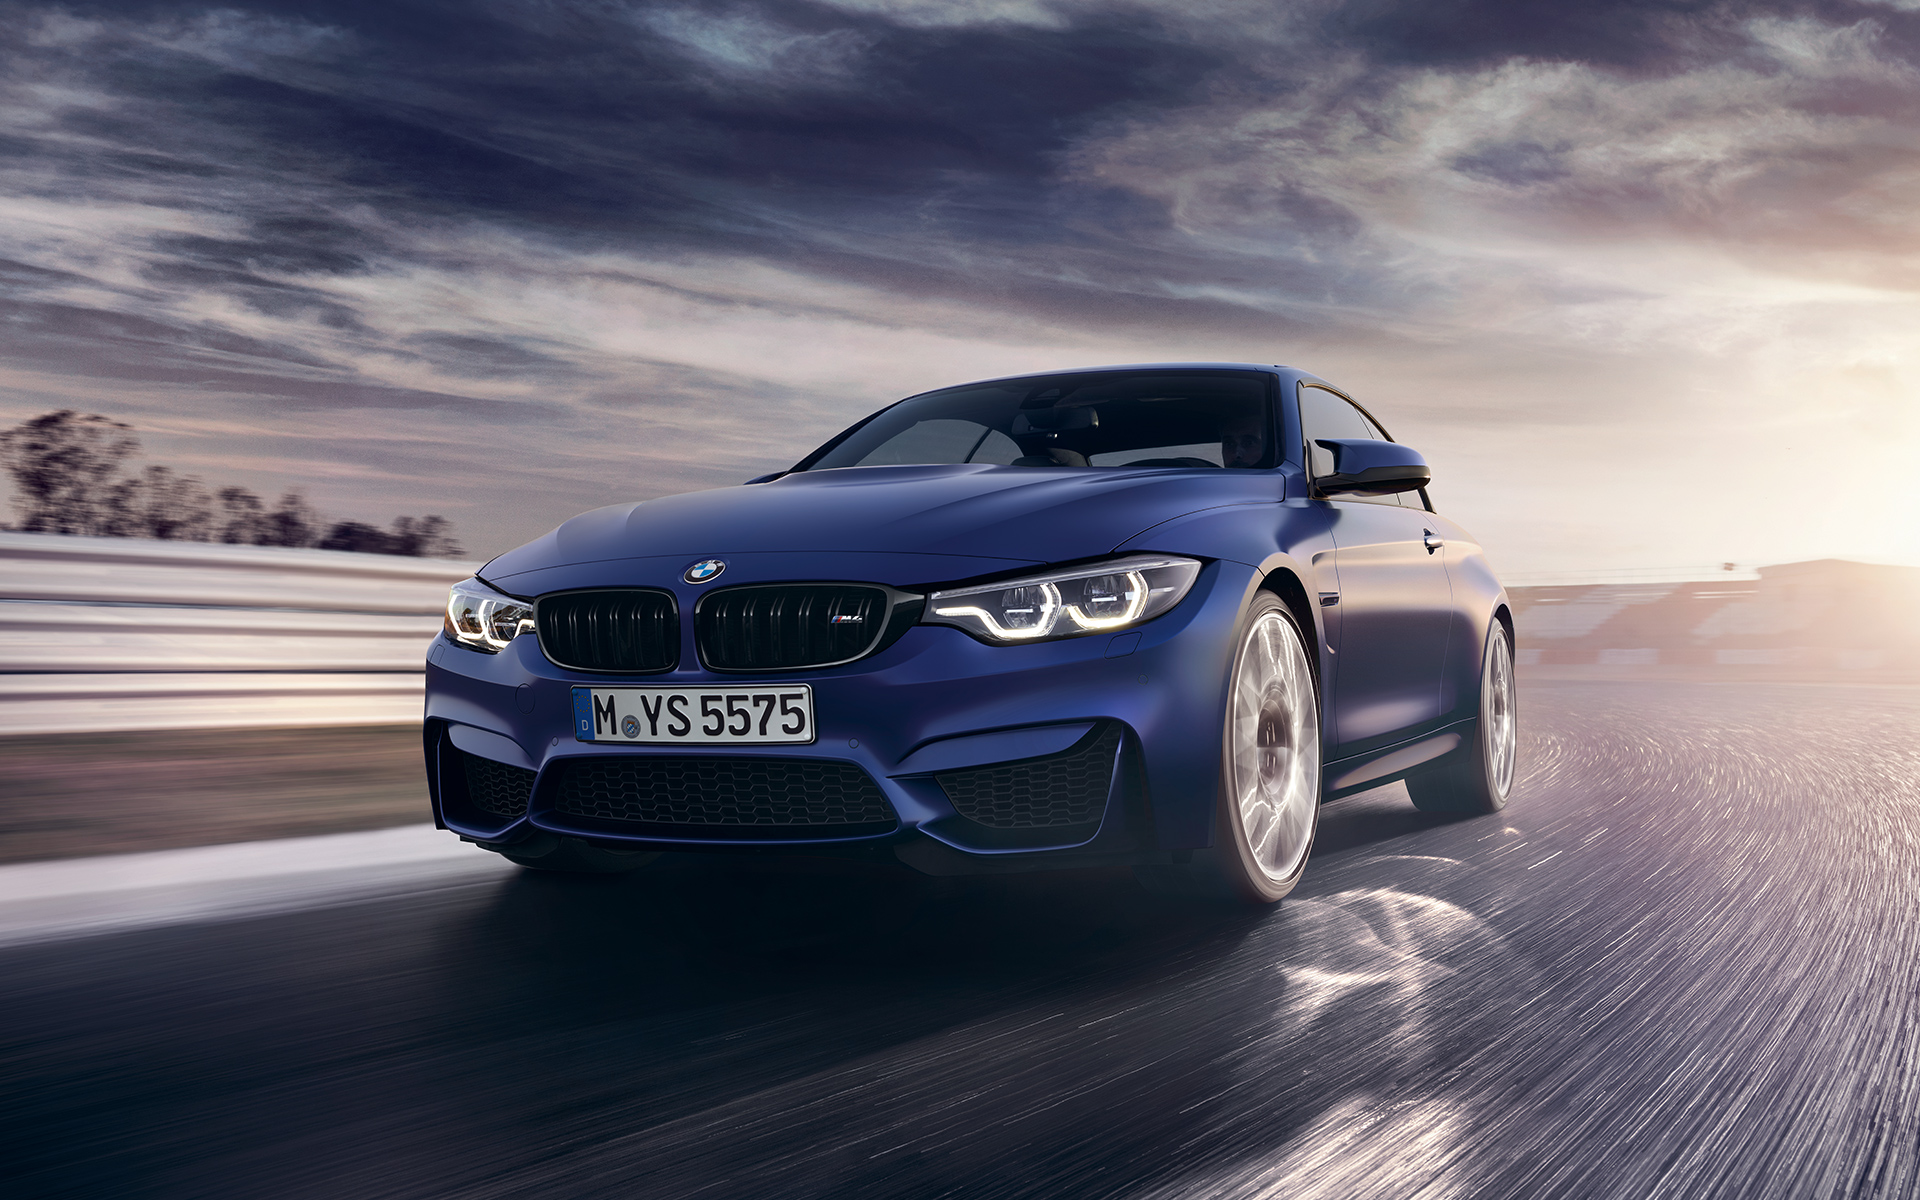 Used BMW M4 >> BMW M4 Convertible: Images & Videos